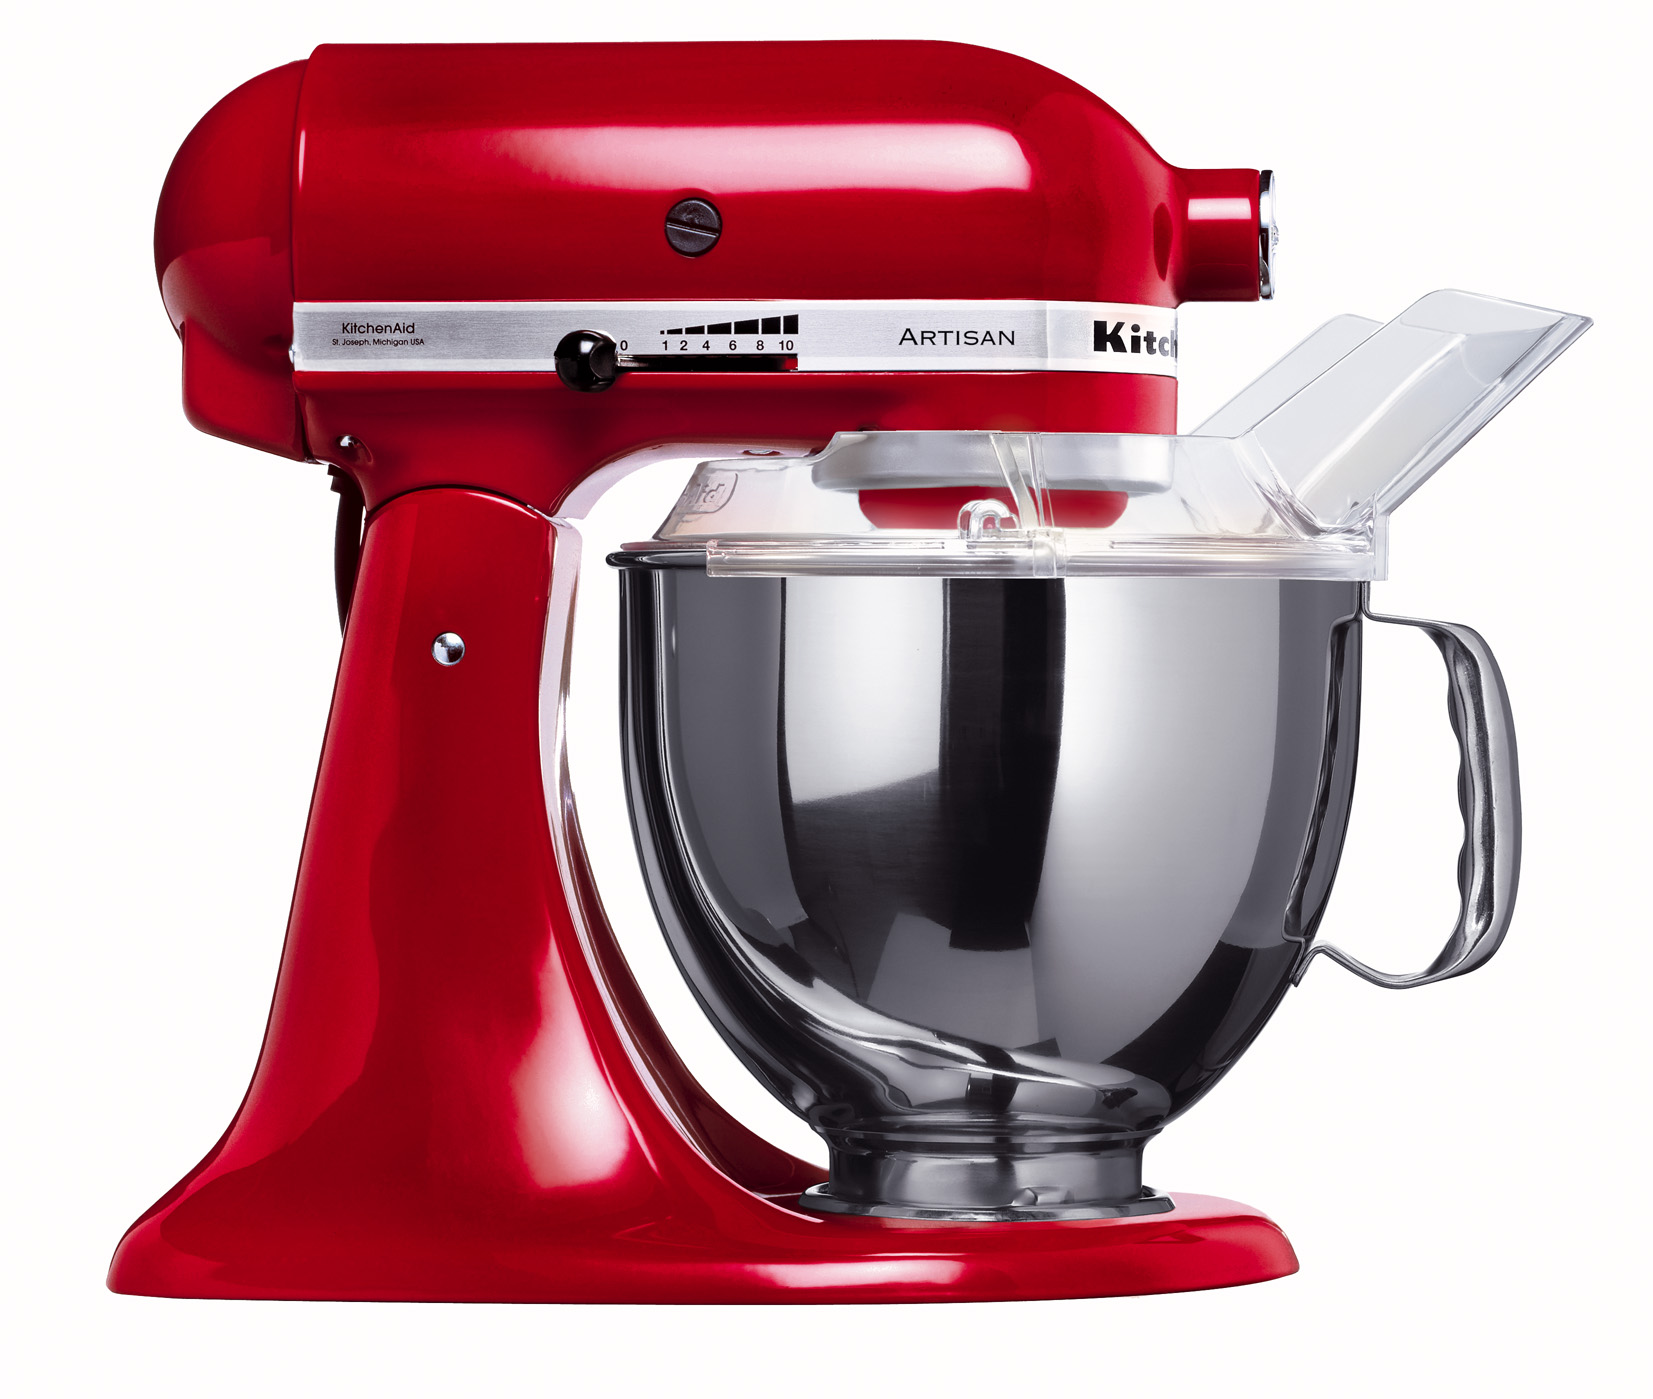 kitchenaid artisan 5ksm150 stand mixer que seja doce nivea sorensen. Black Bedroom Furniture Sets. Home Design Ideas